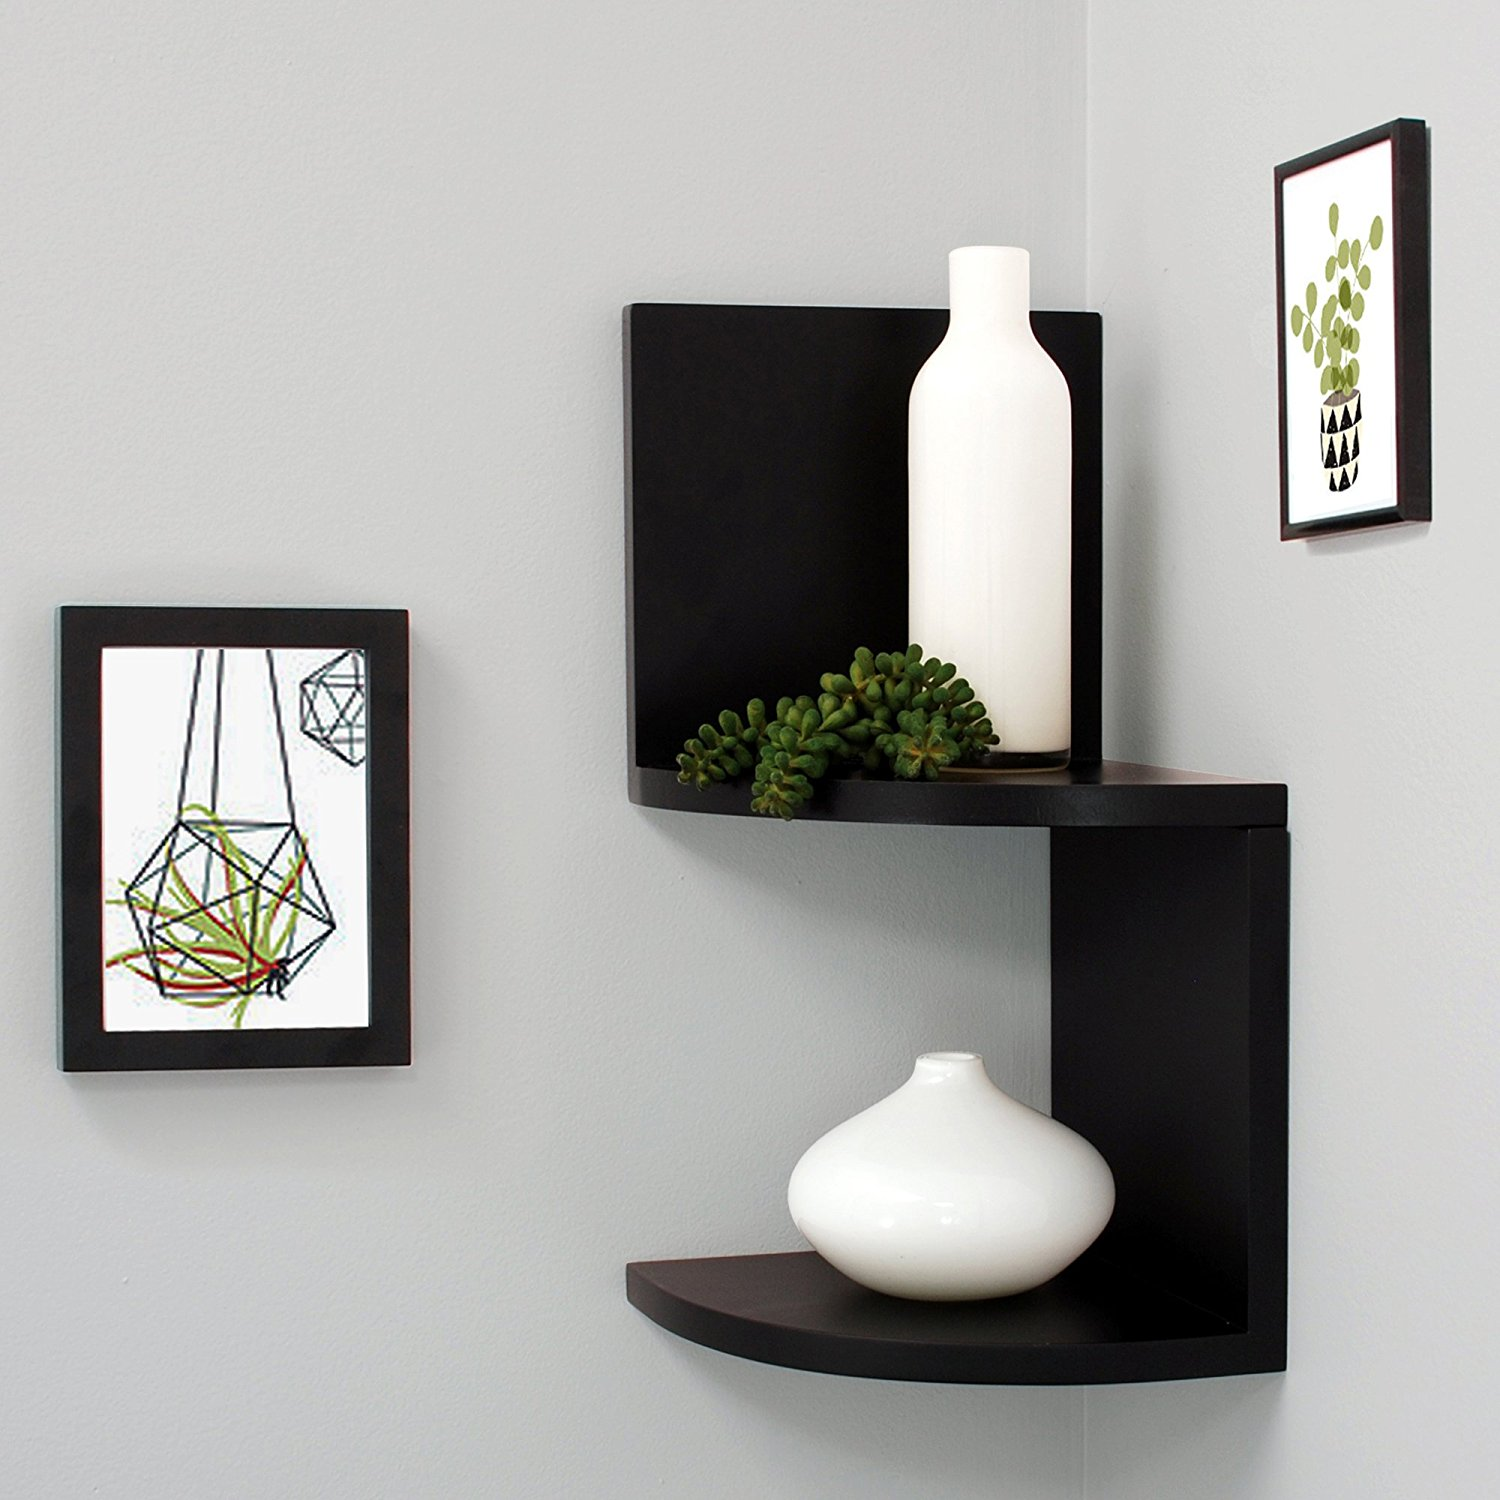 Priva 2 Tier Corner Shelf 7 75 Inch Per Black Stylish Shelves In Finish For An Edgy And Modern Look By Kiera Grace